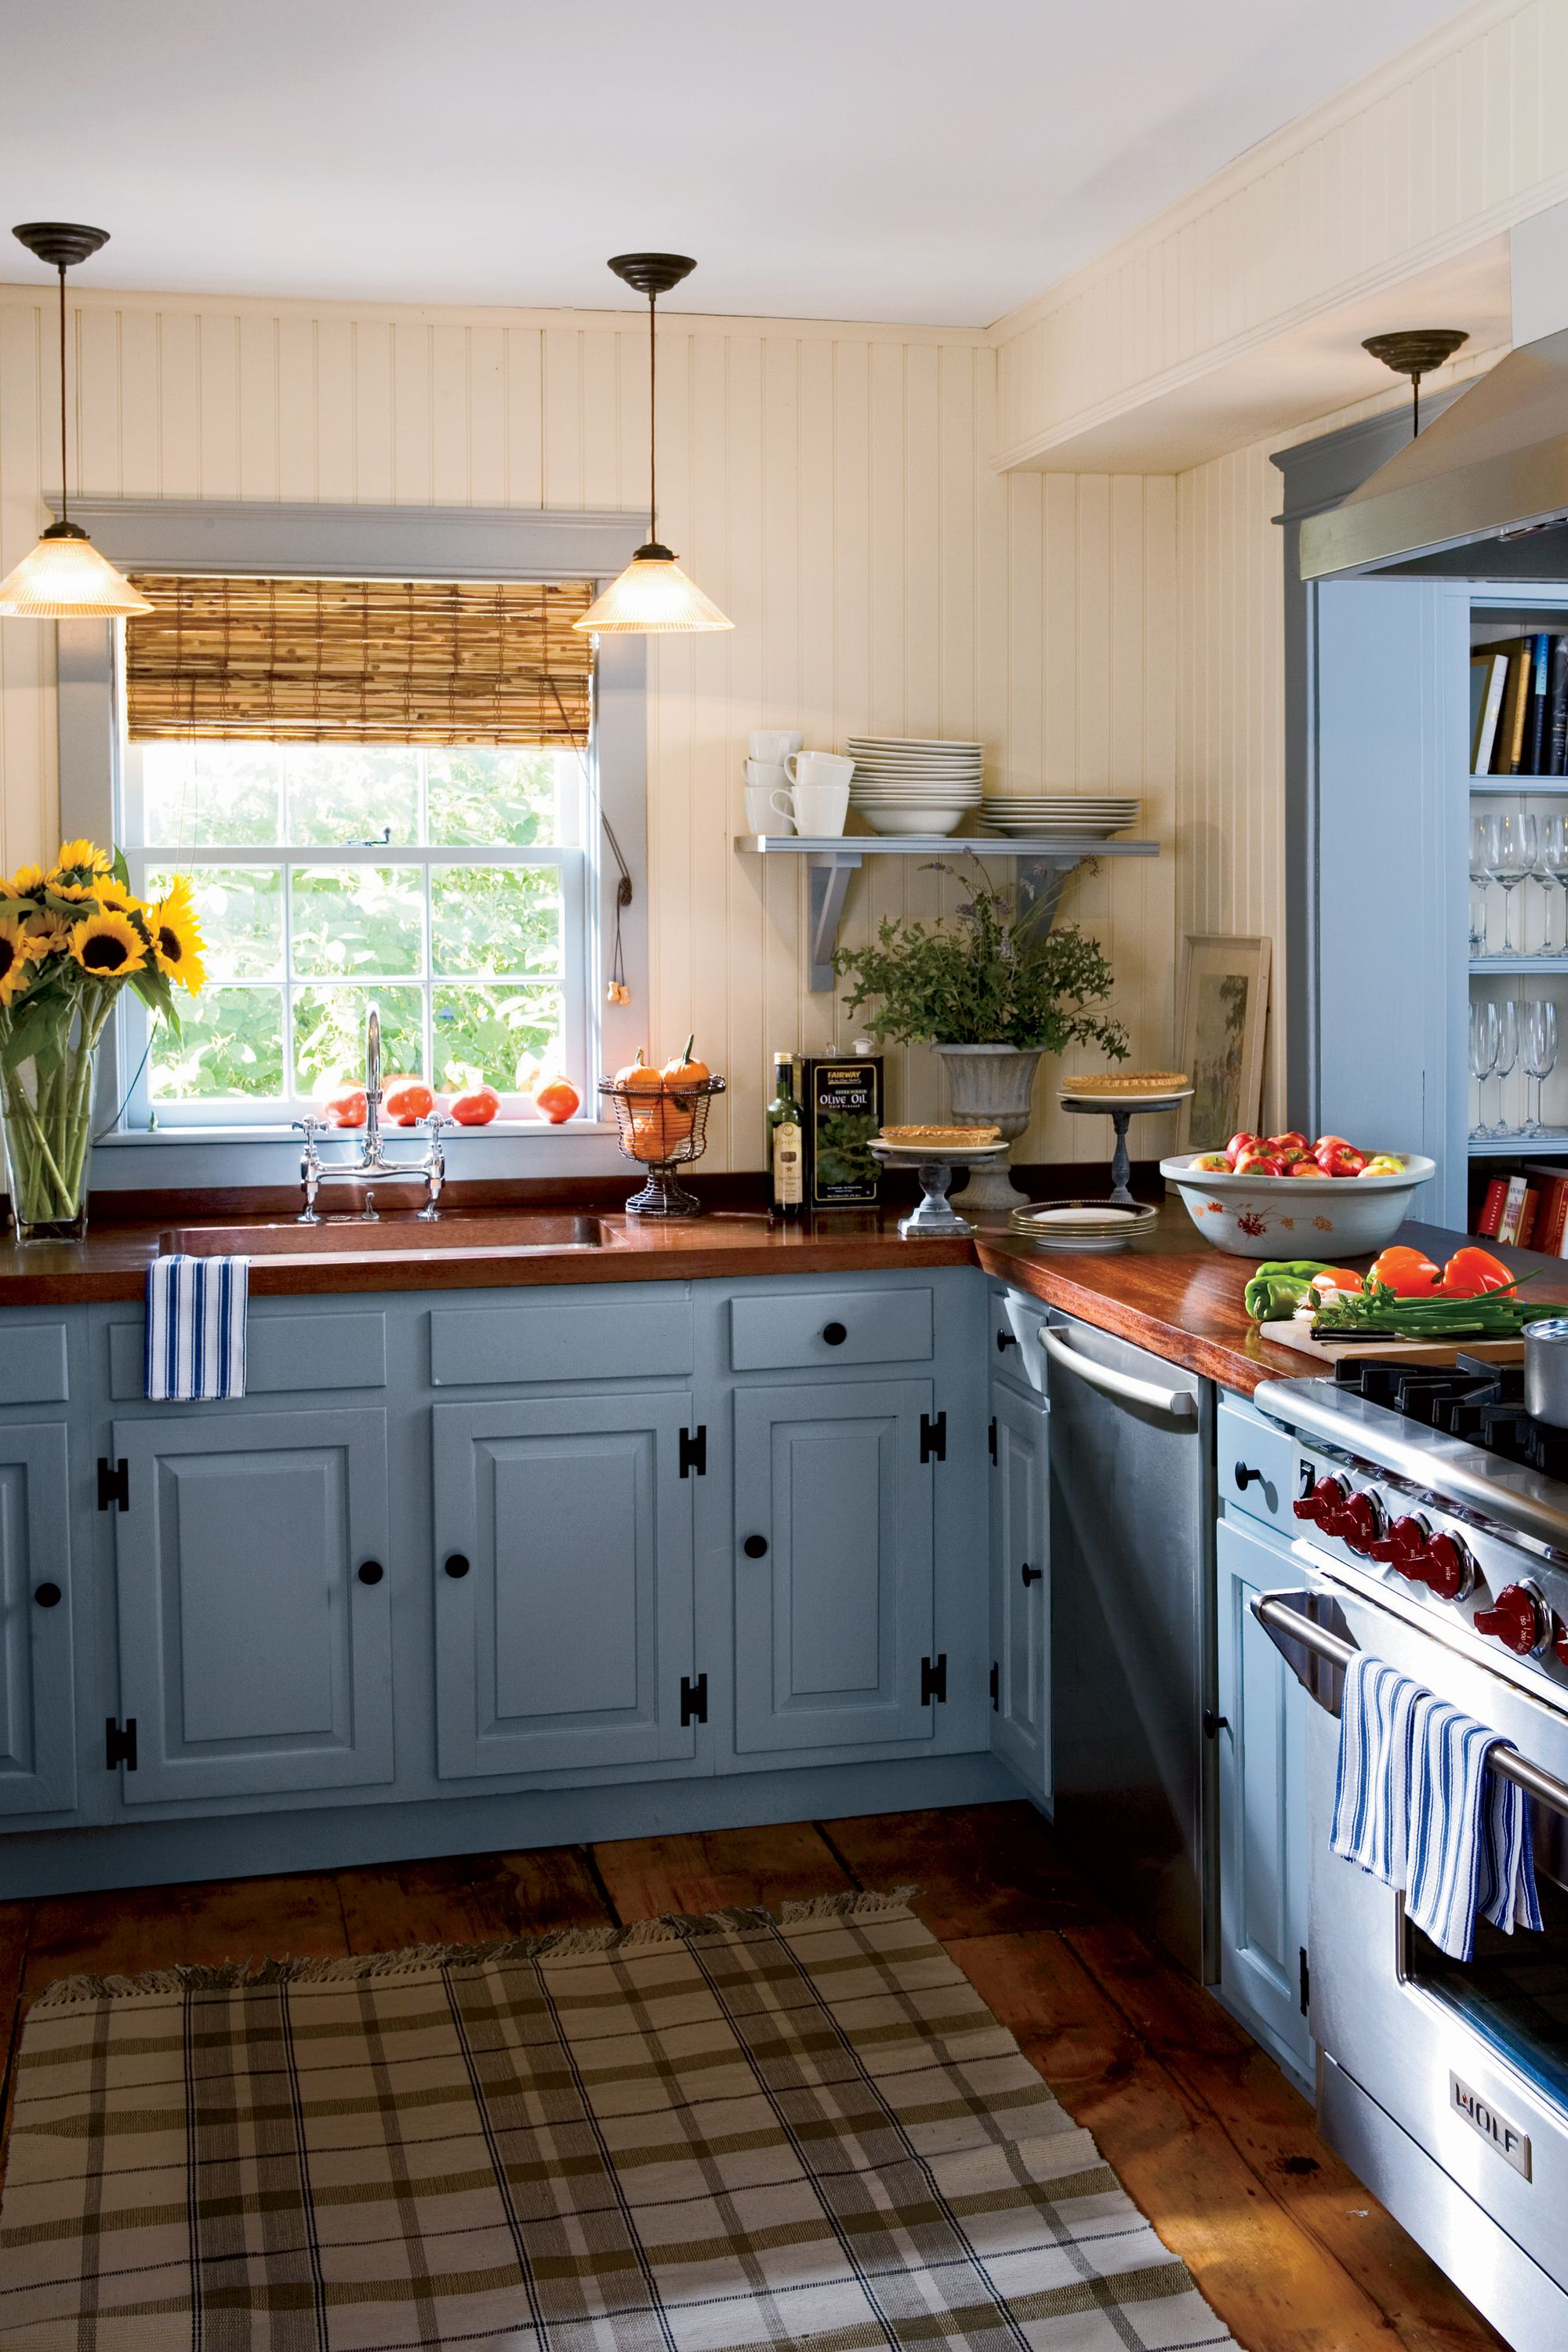 15 ways to add color to your kitchen sag harbor open for Country kitchen paint colors